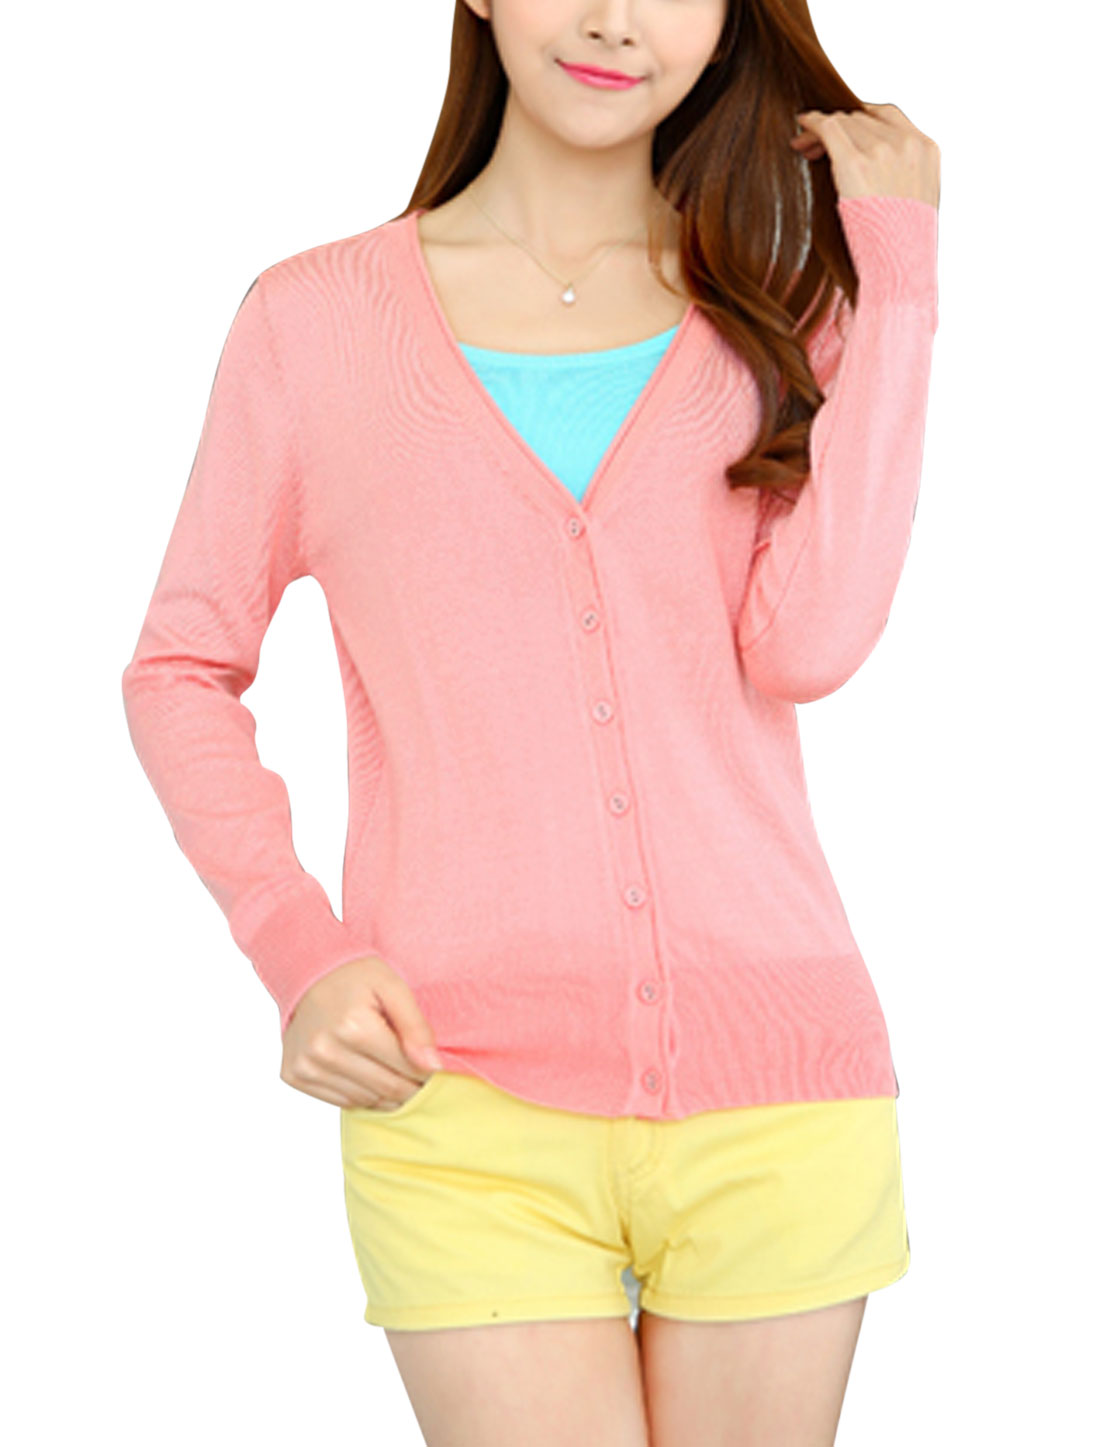 Women Long Sleeves Button Closure Casual Knit Cardigan Pink S